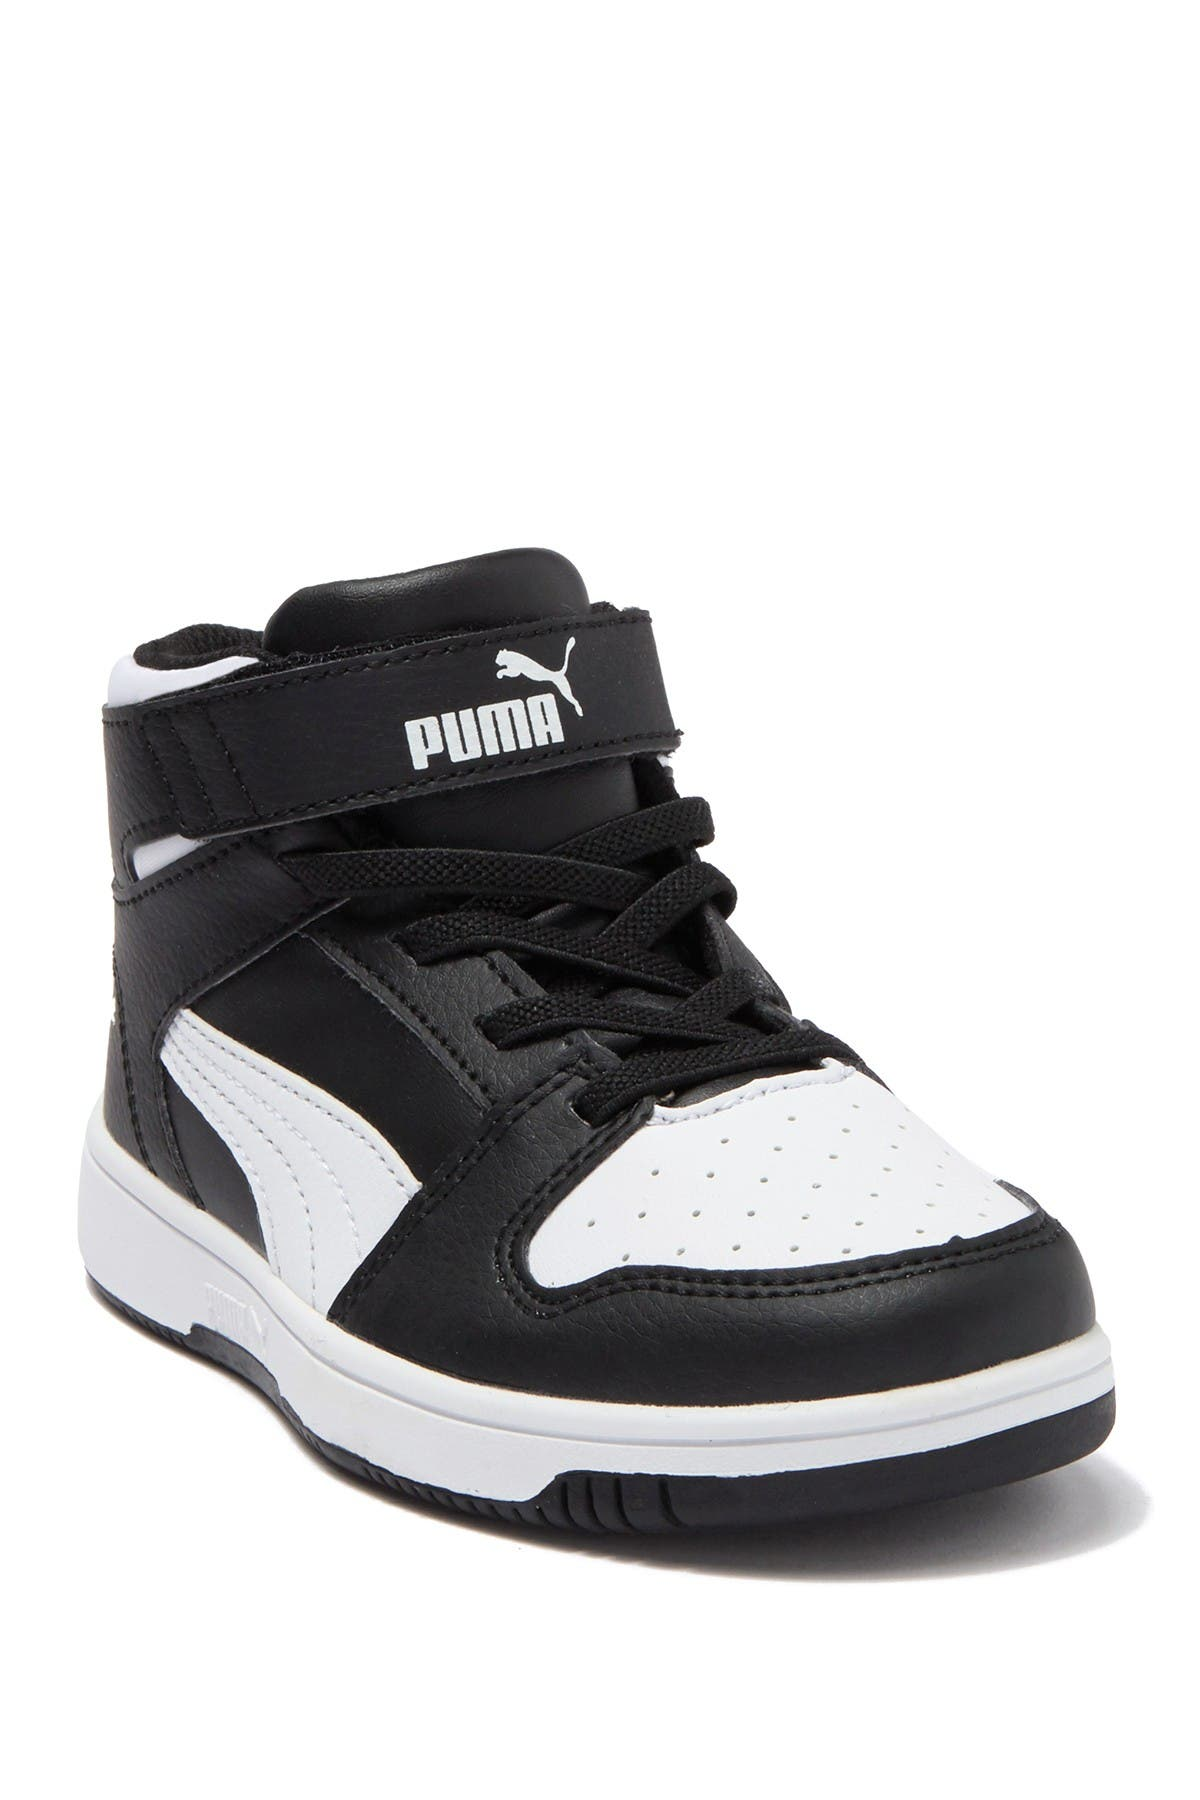 Image of PUMA Rebound Lay-Up High-Top Sneaker